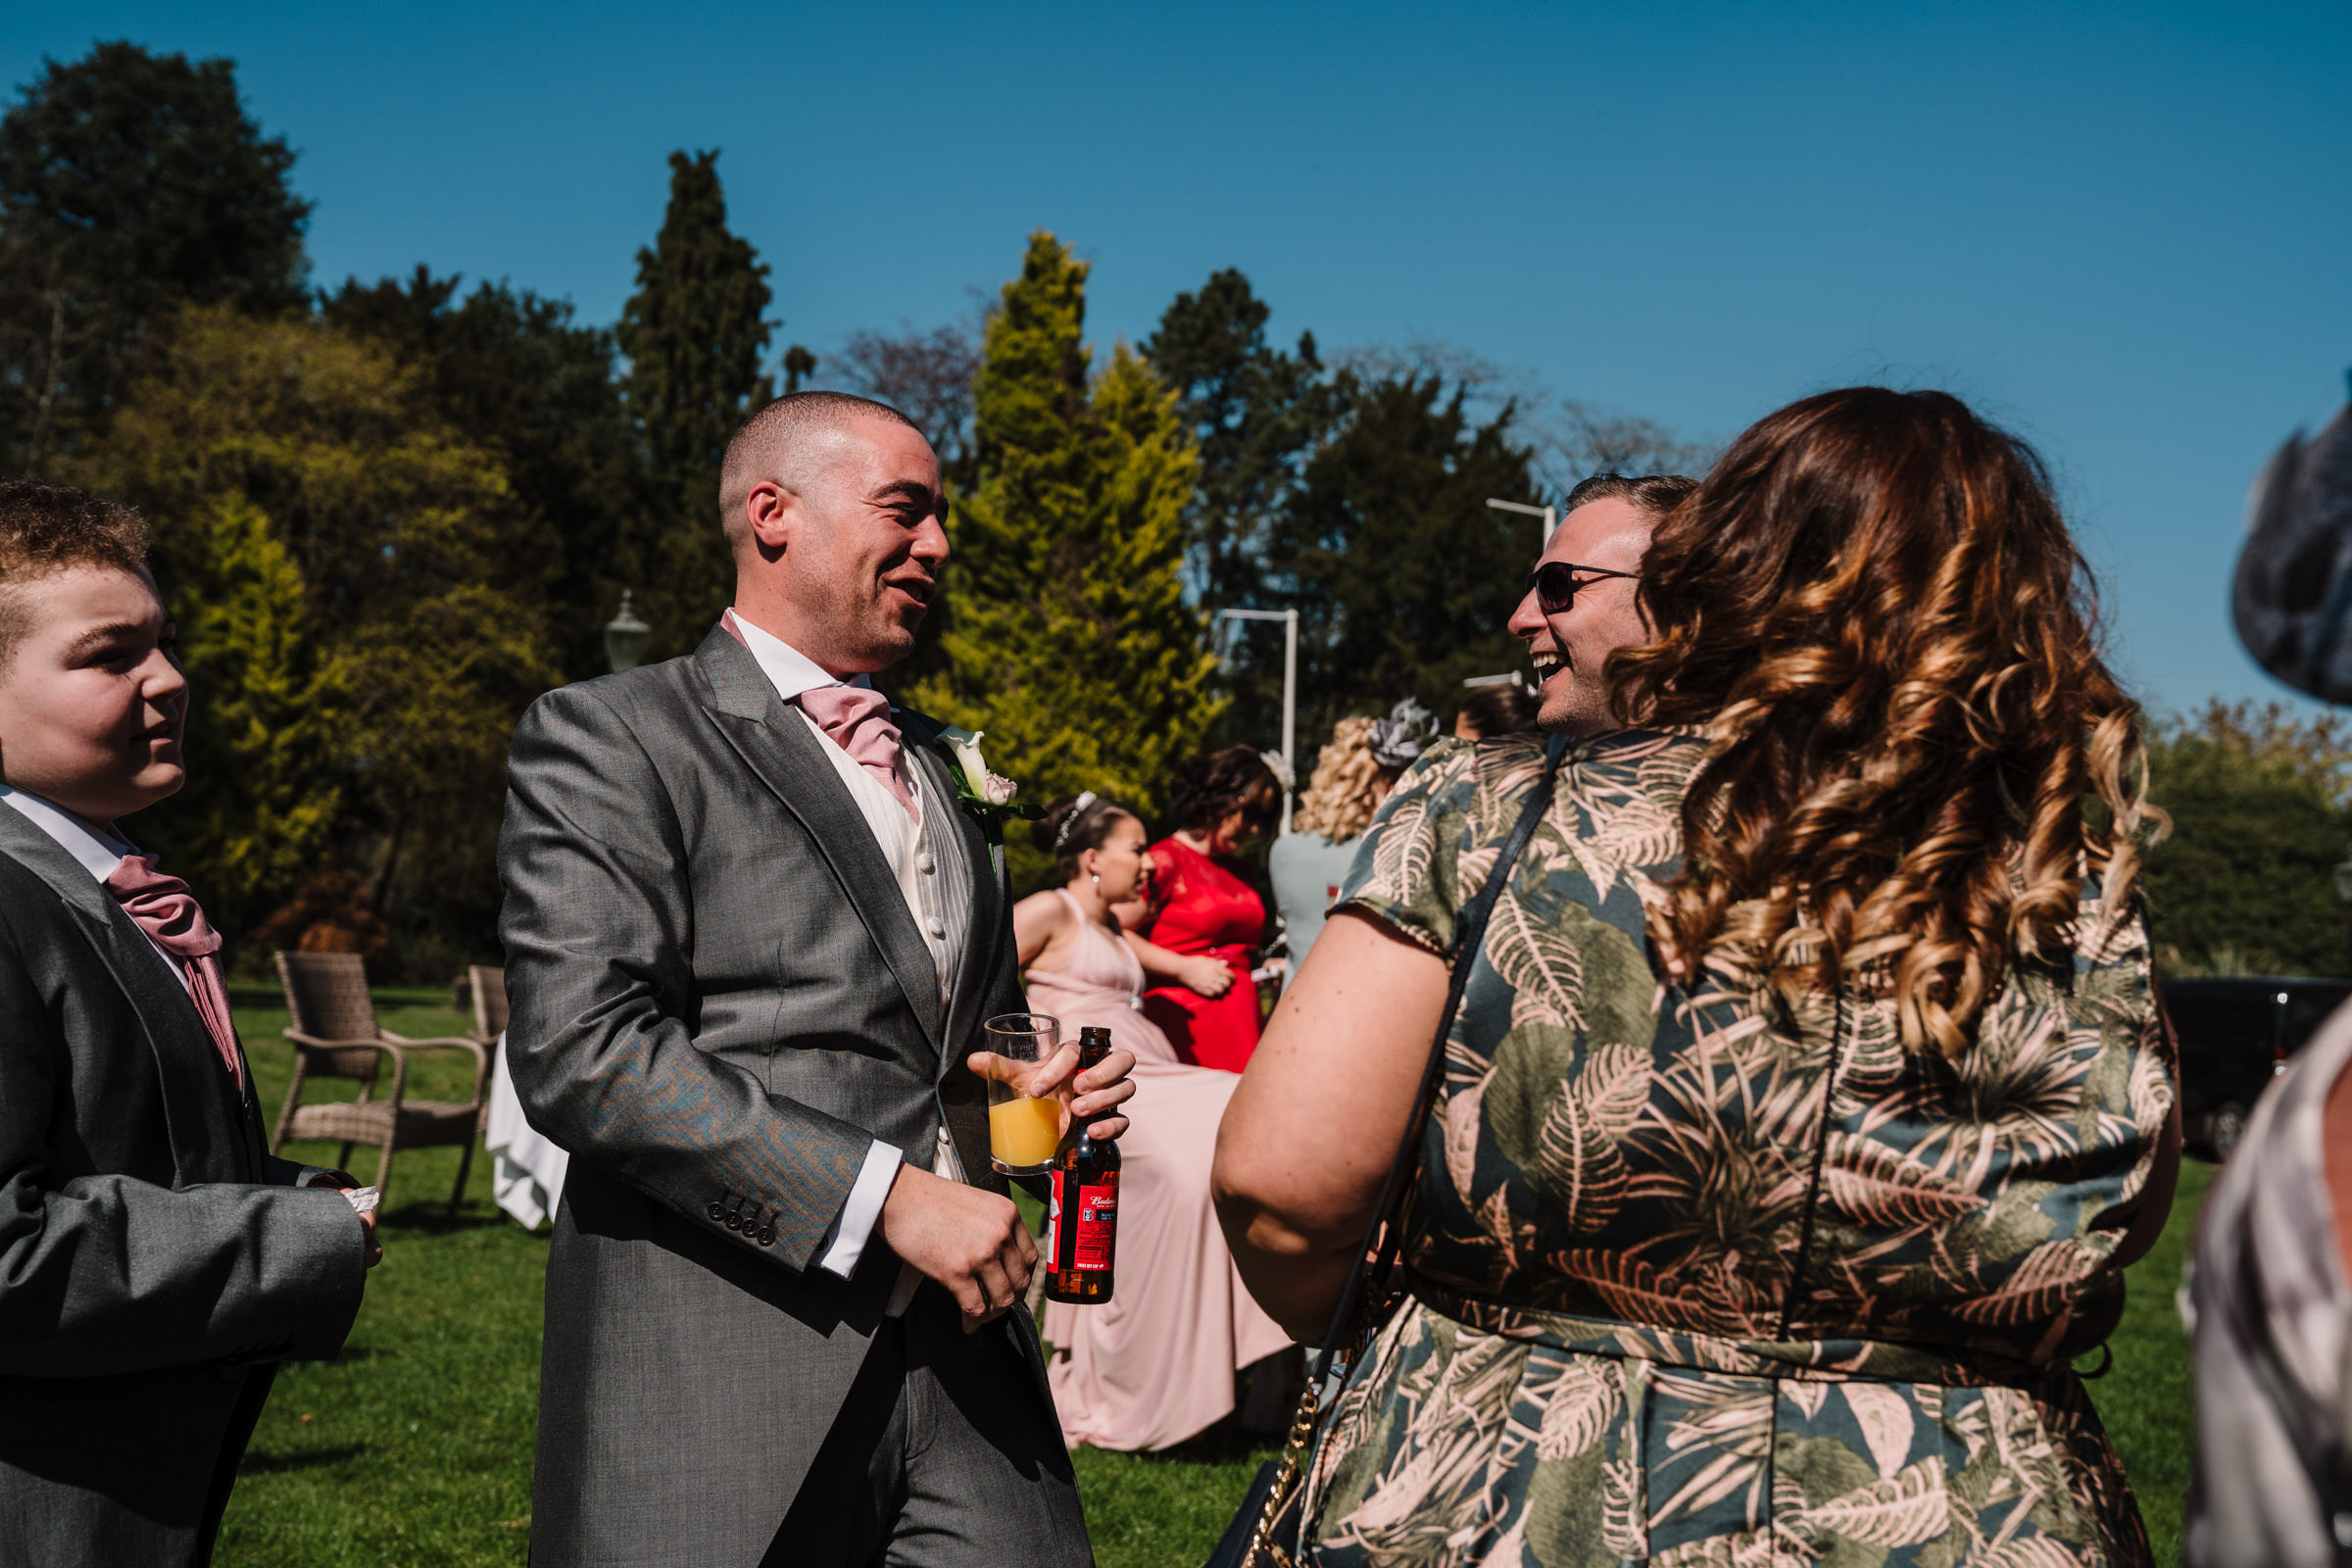 Groom laughing with guests at nailcote hall wedding